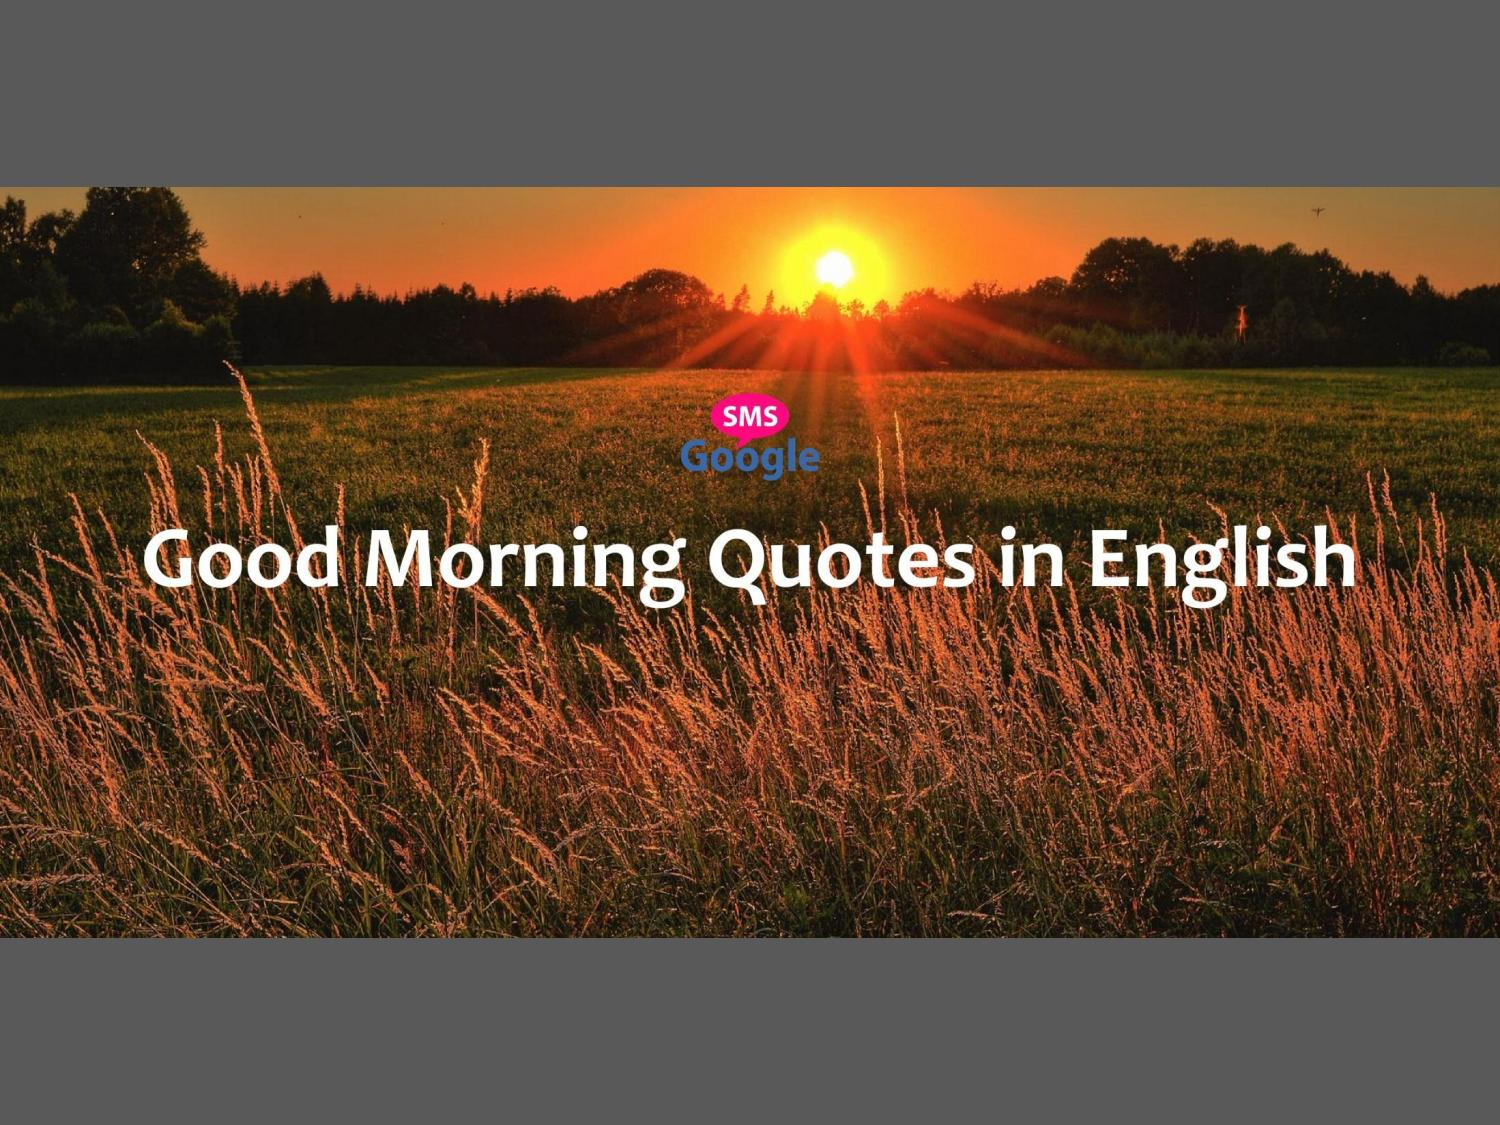 Good Morning Quotes In English By Goooglesms Issuu